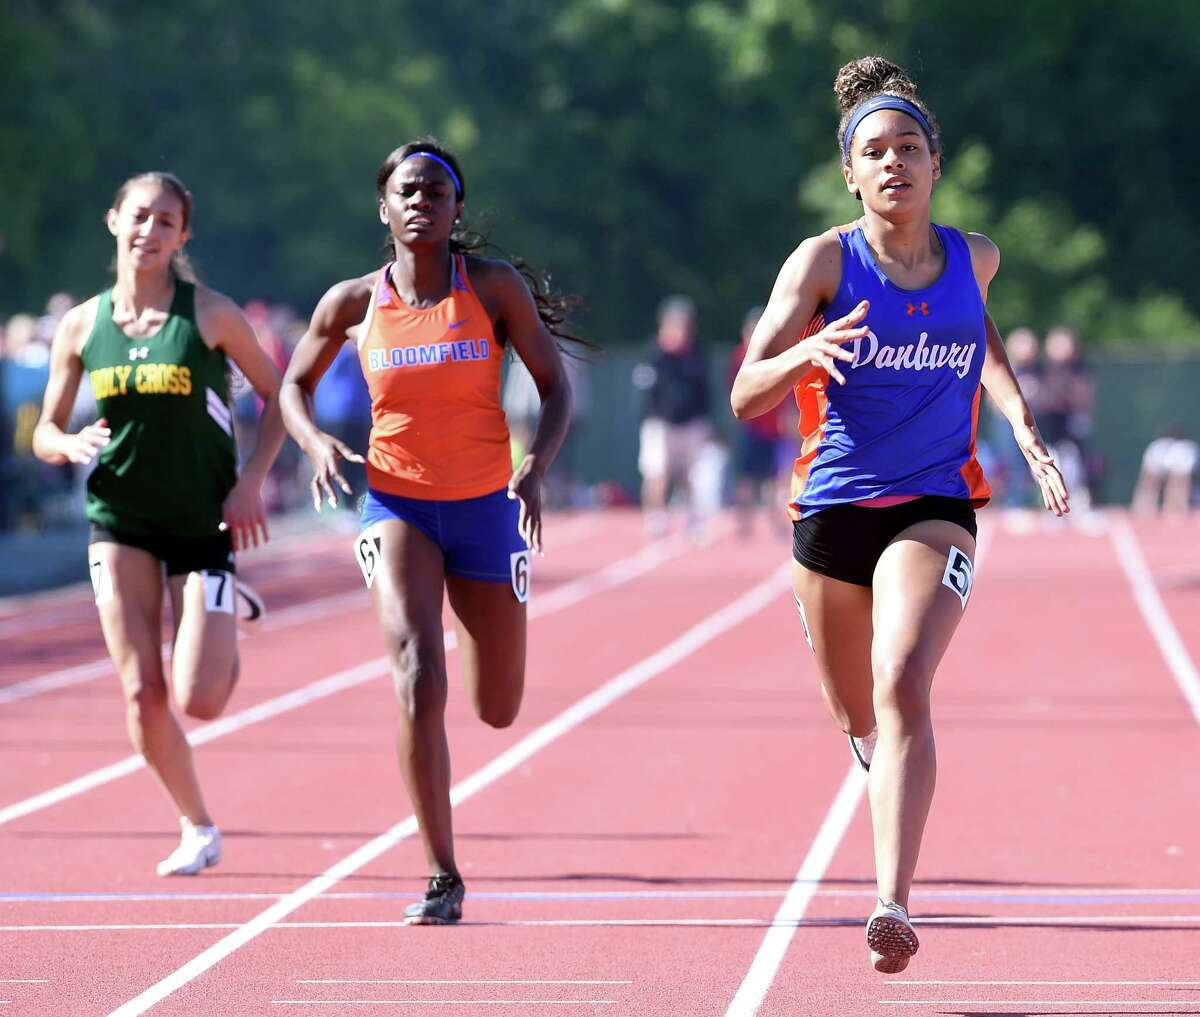 Danbury's Alanna Smith, right, wins the 400-meter dash at the State Open on June 3.